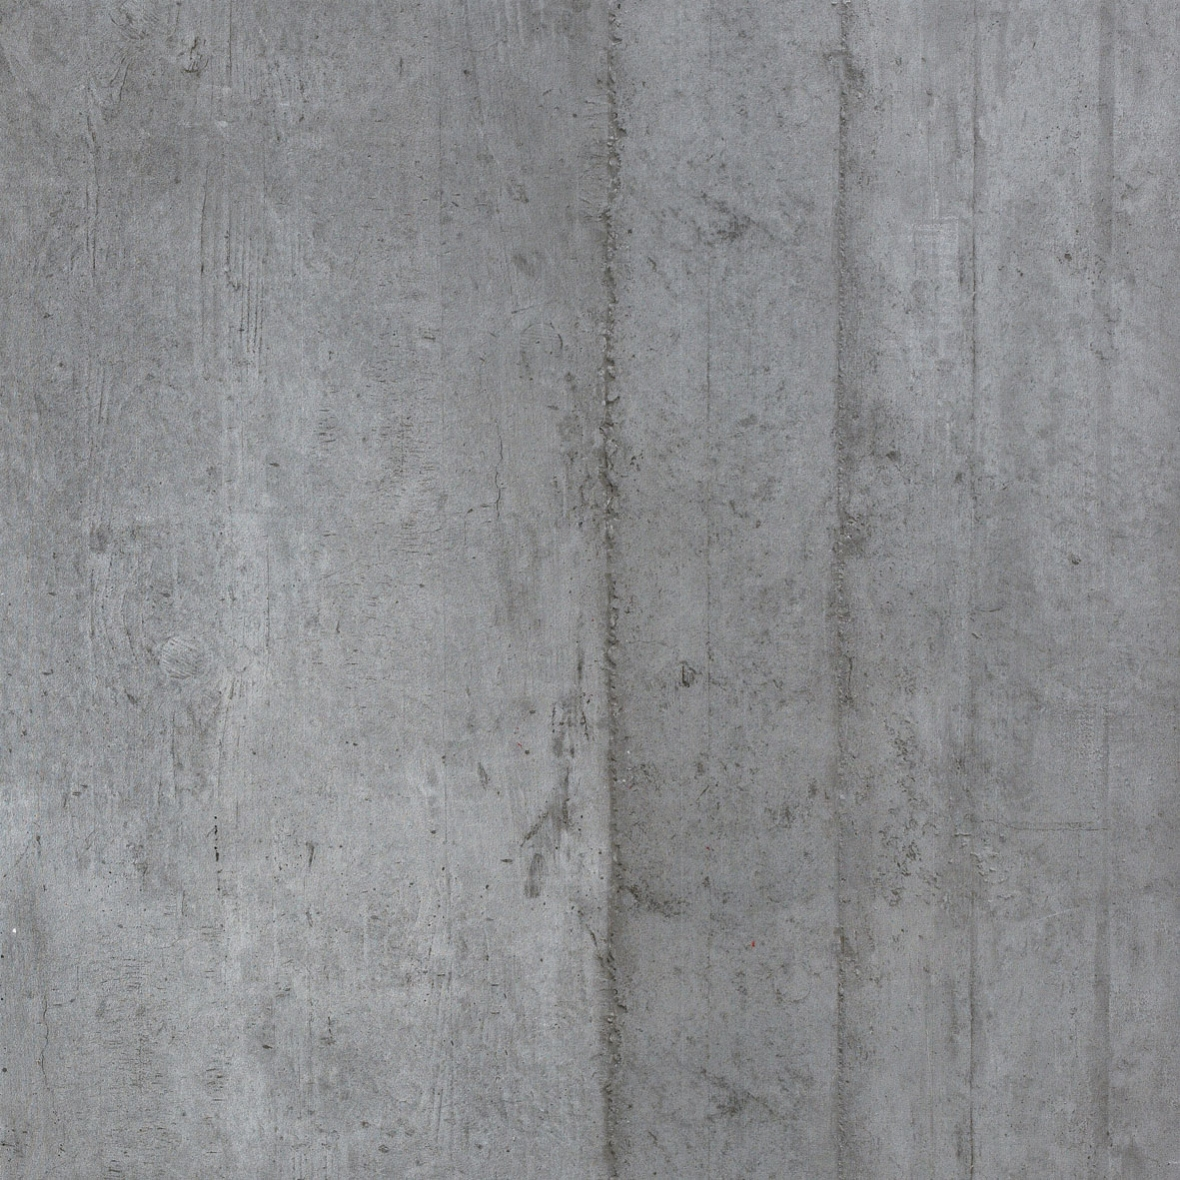 P0073 Cament Desert Porcelain Tile, Gray